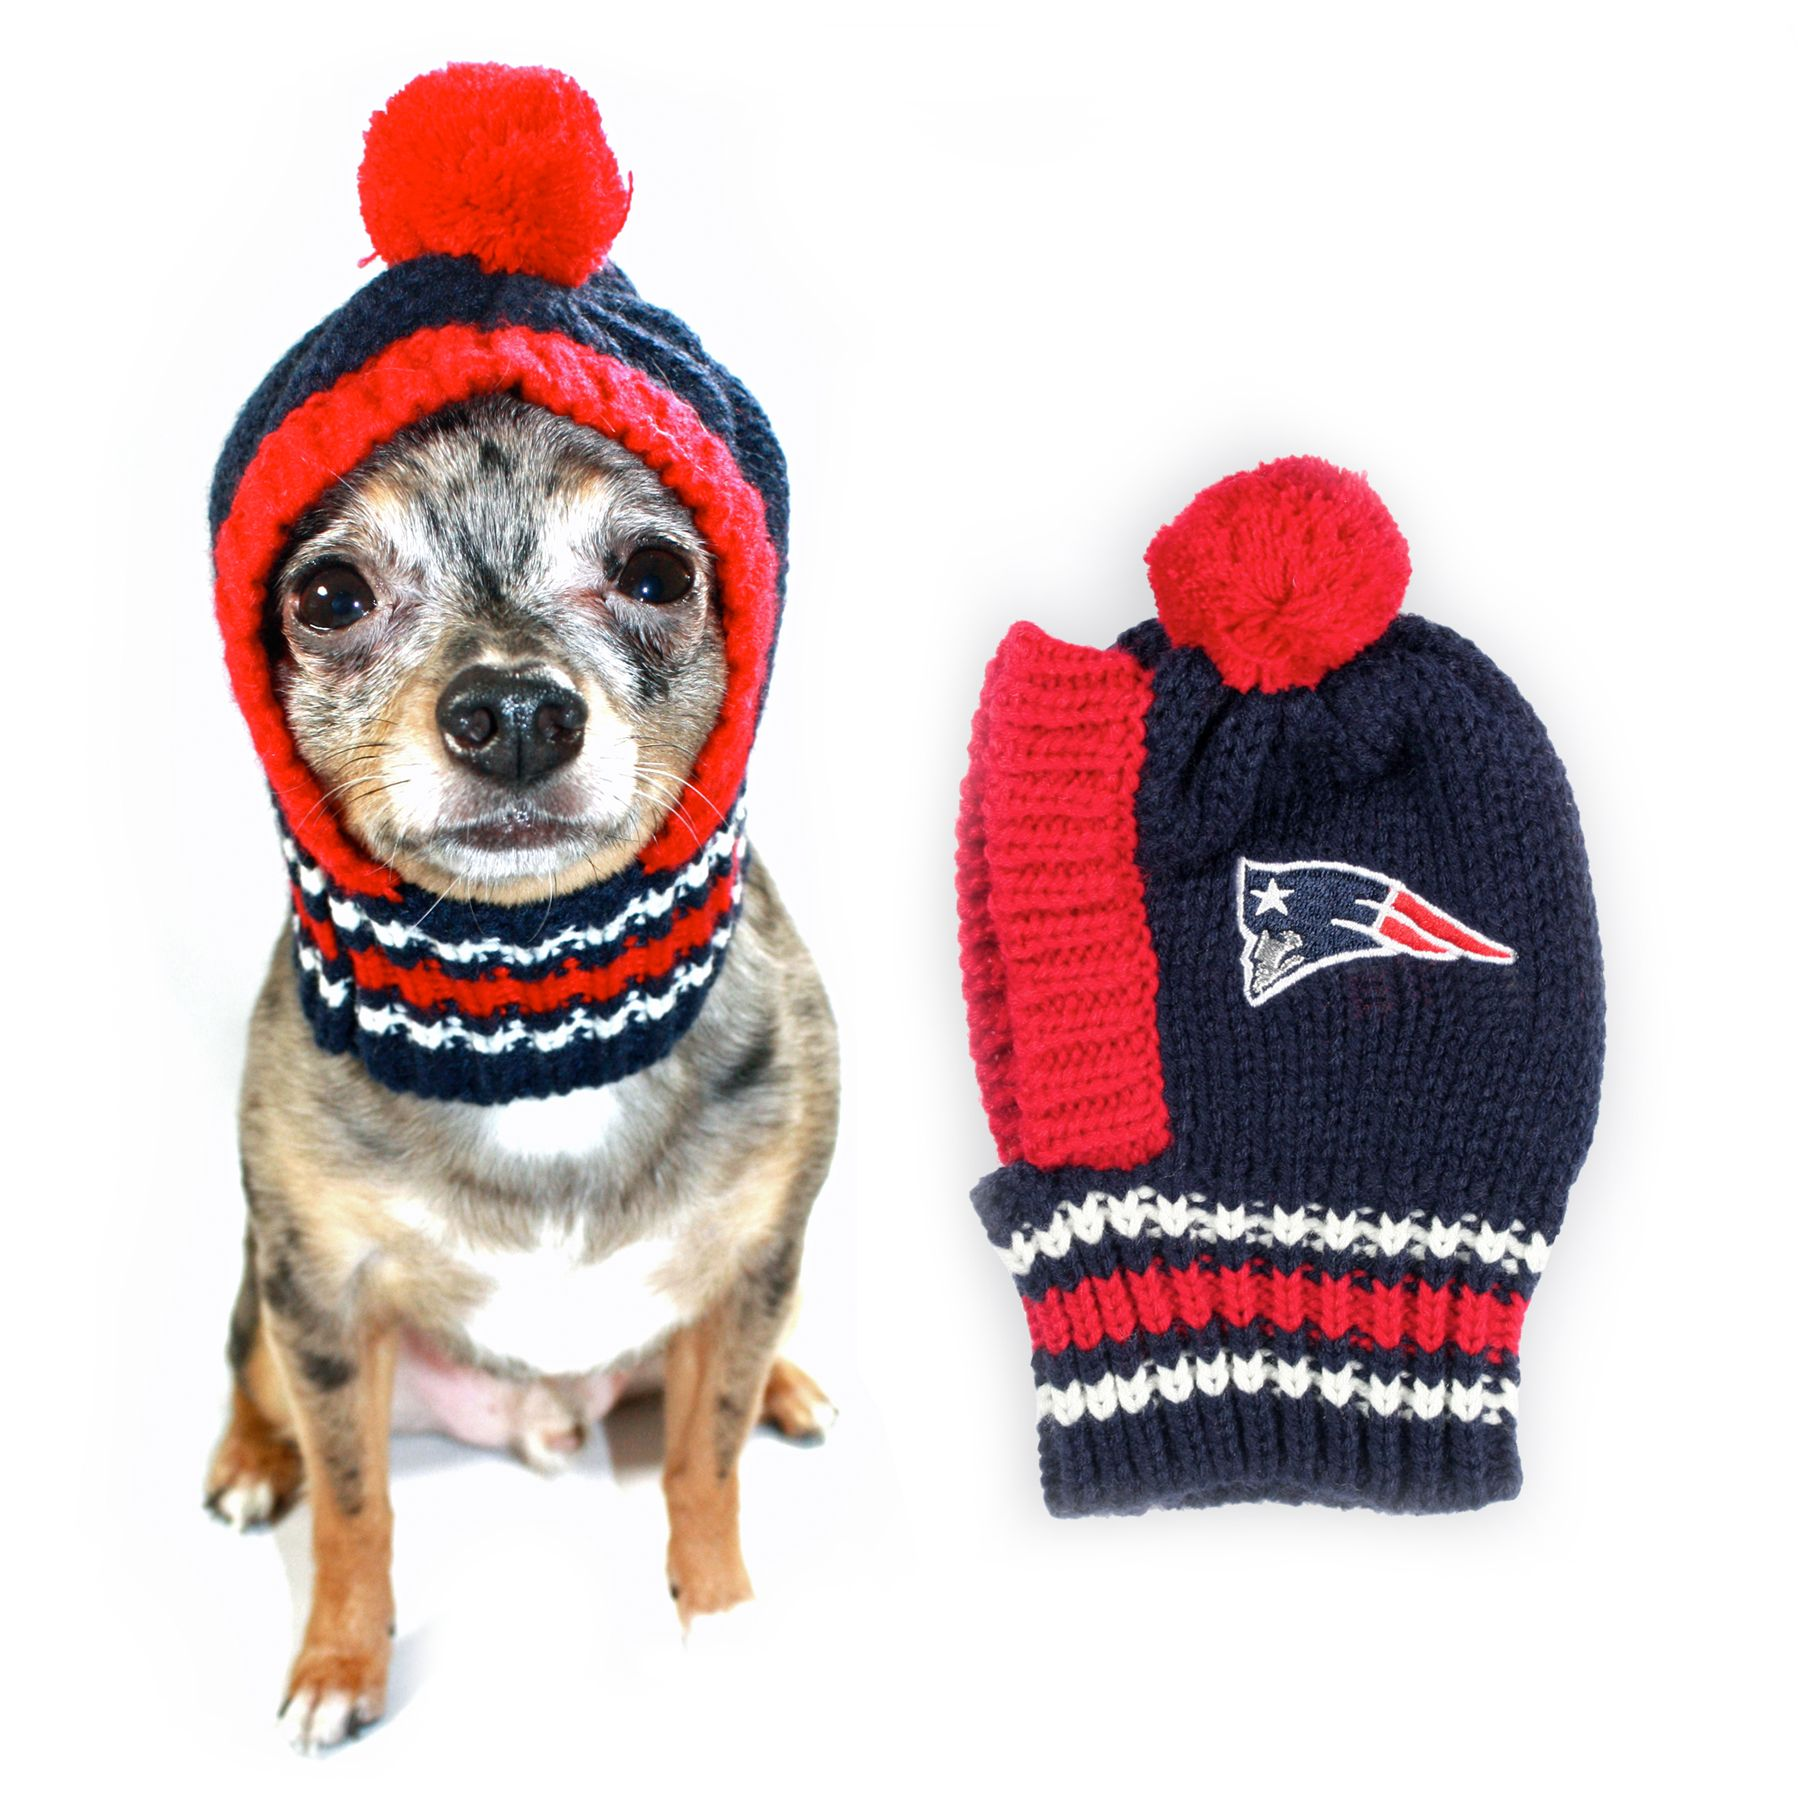 New England Patriots NFL Knit Hat size: Large